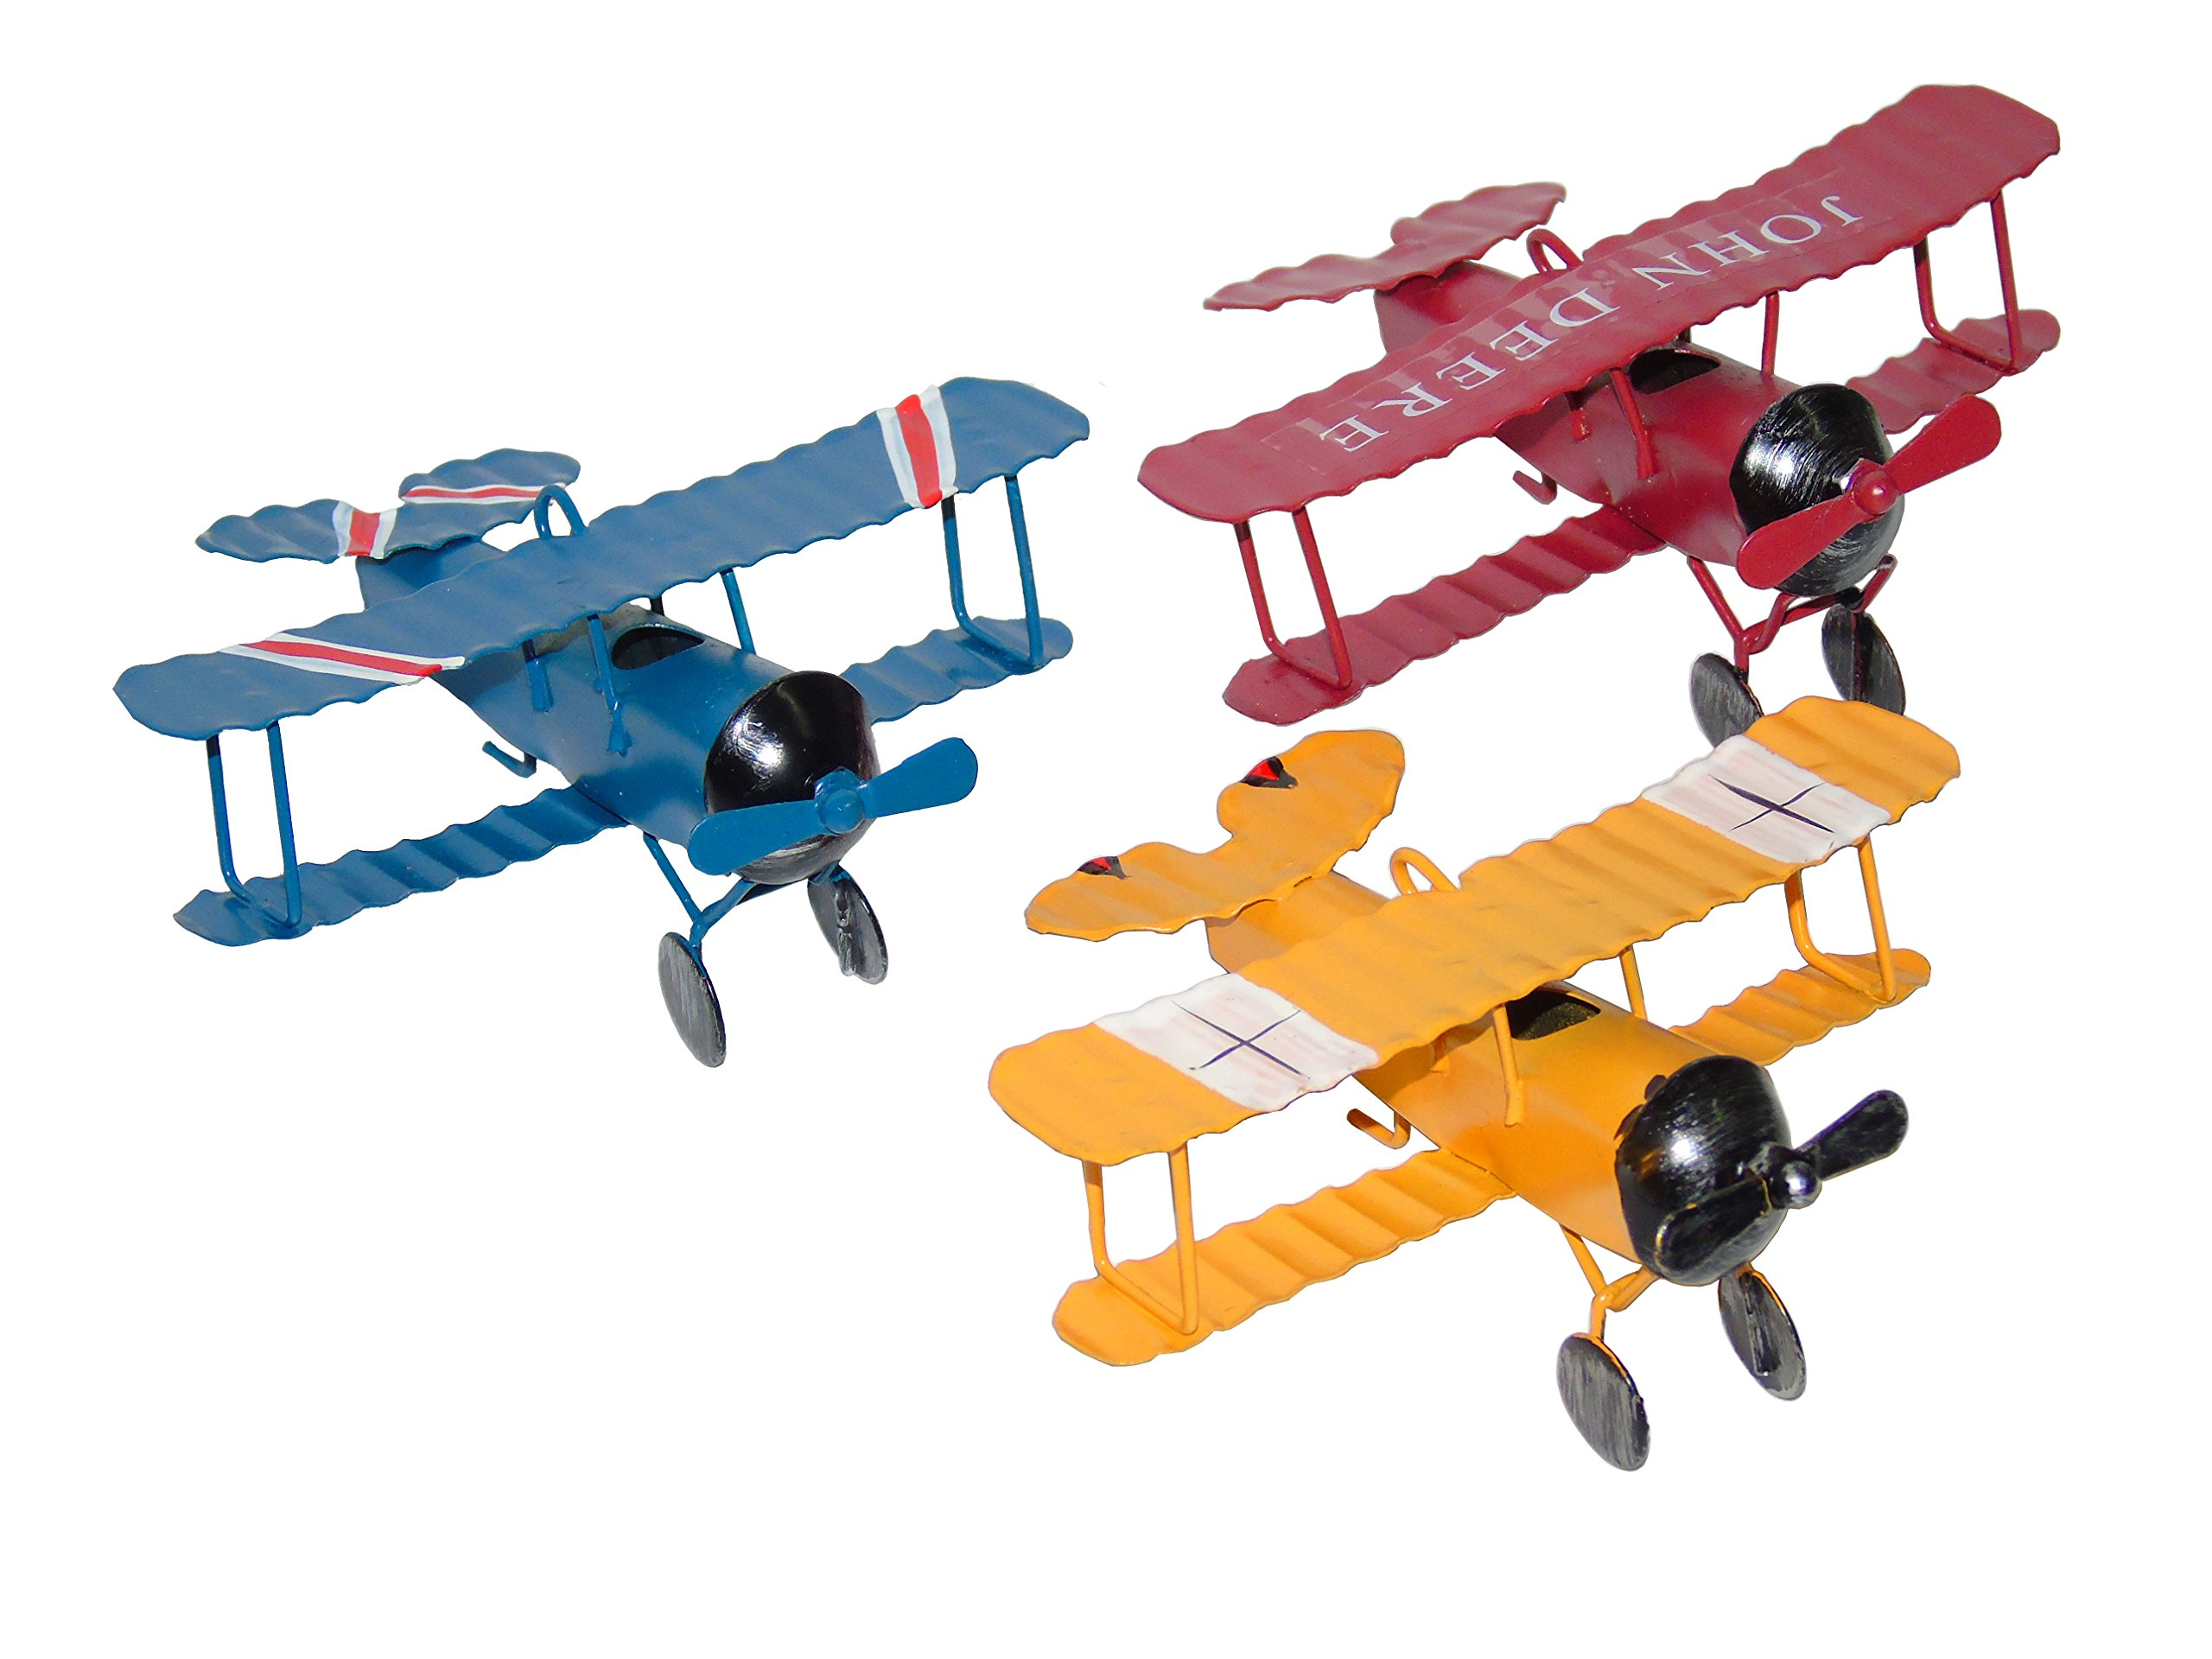 Ceeyali Vintage Wrought Iron Metal Plane Aircraft Models Handicraft for Photo Props/Christmas/Kids Toy/Cake Topper/Home Decor/Ornament/Desktop Decoration Pack of 3